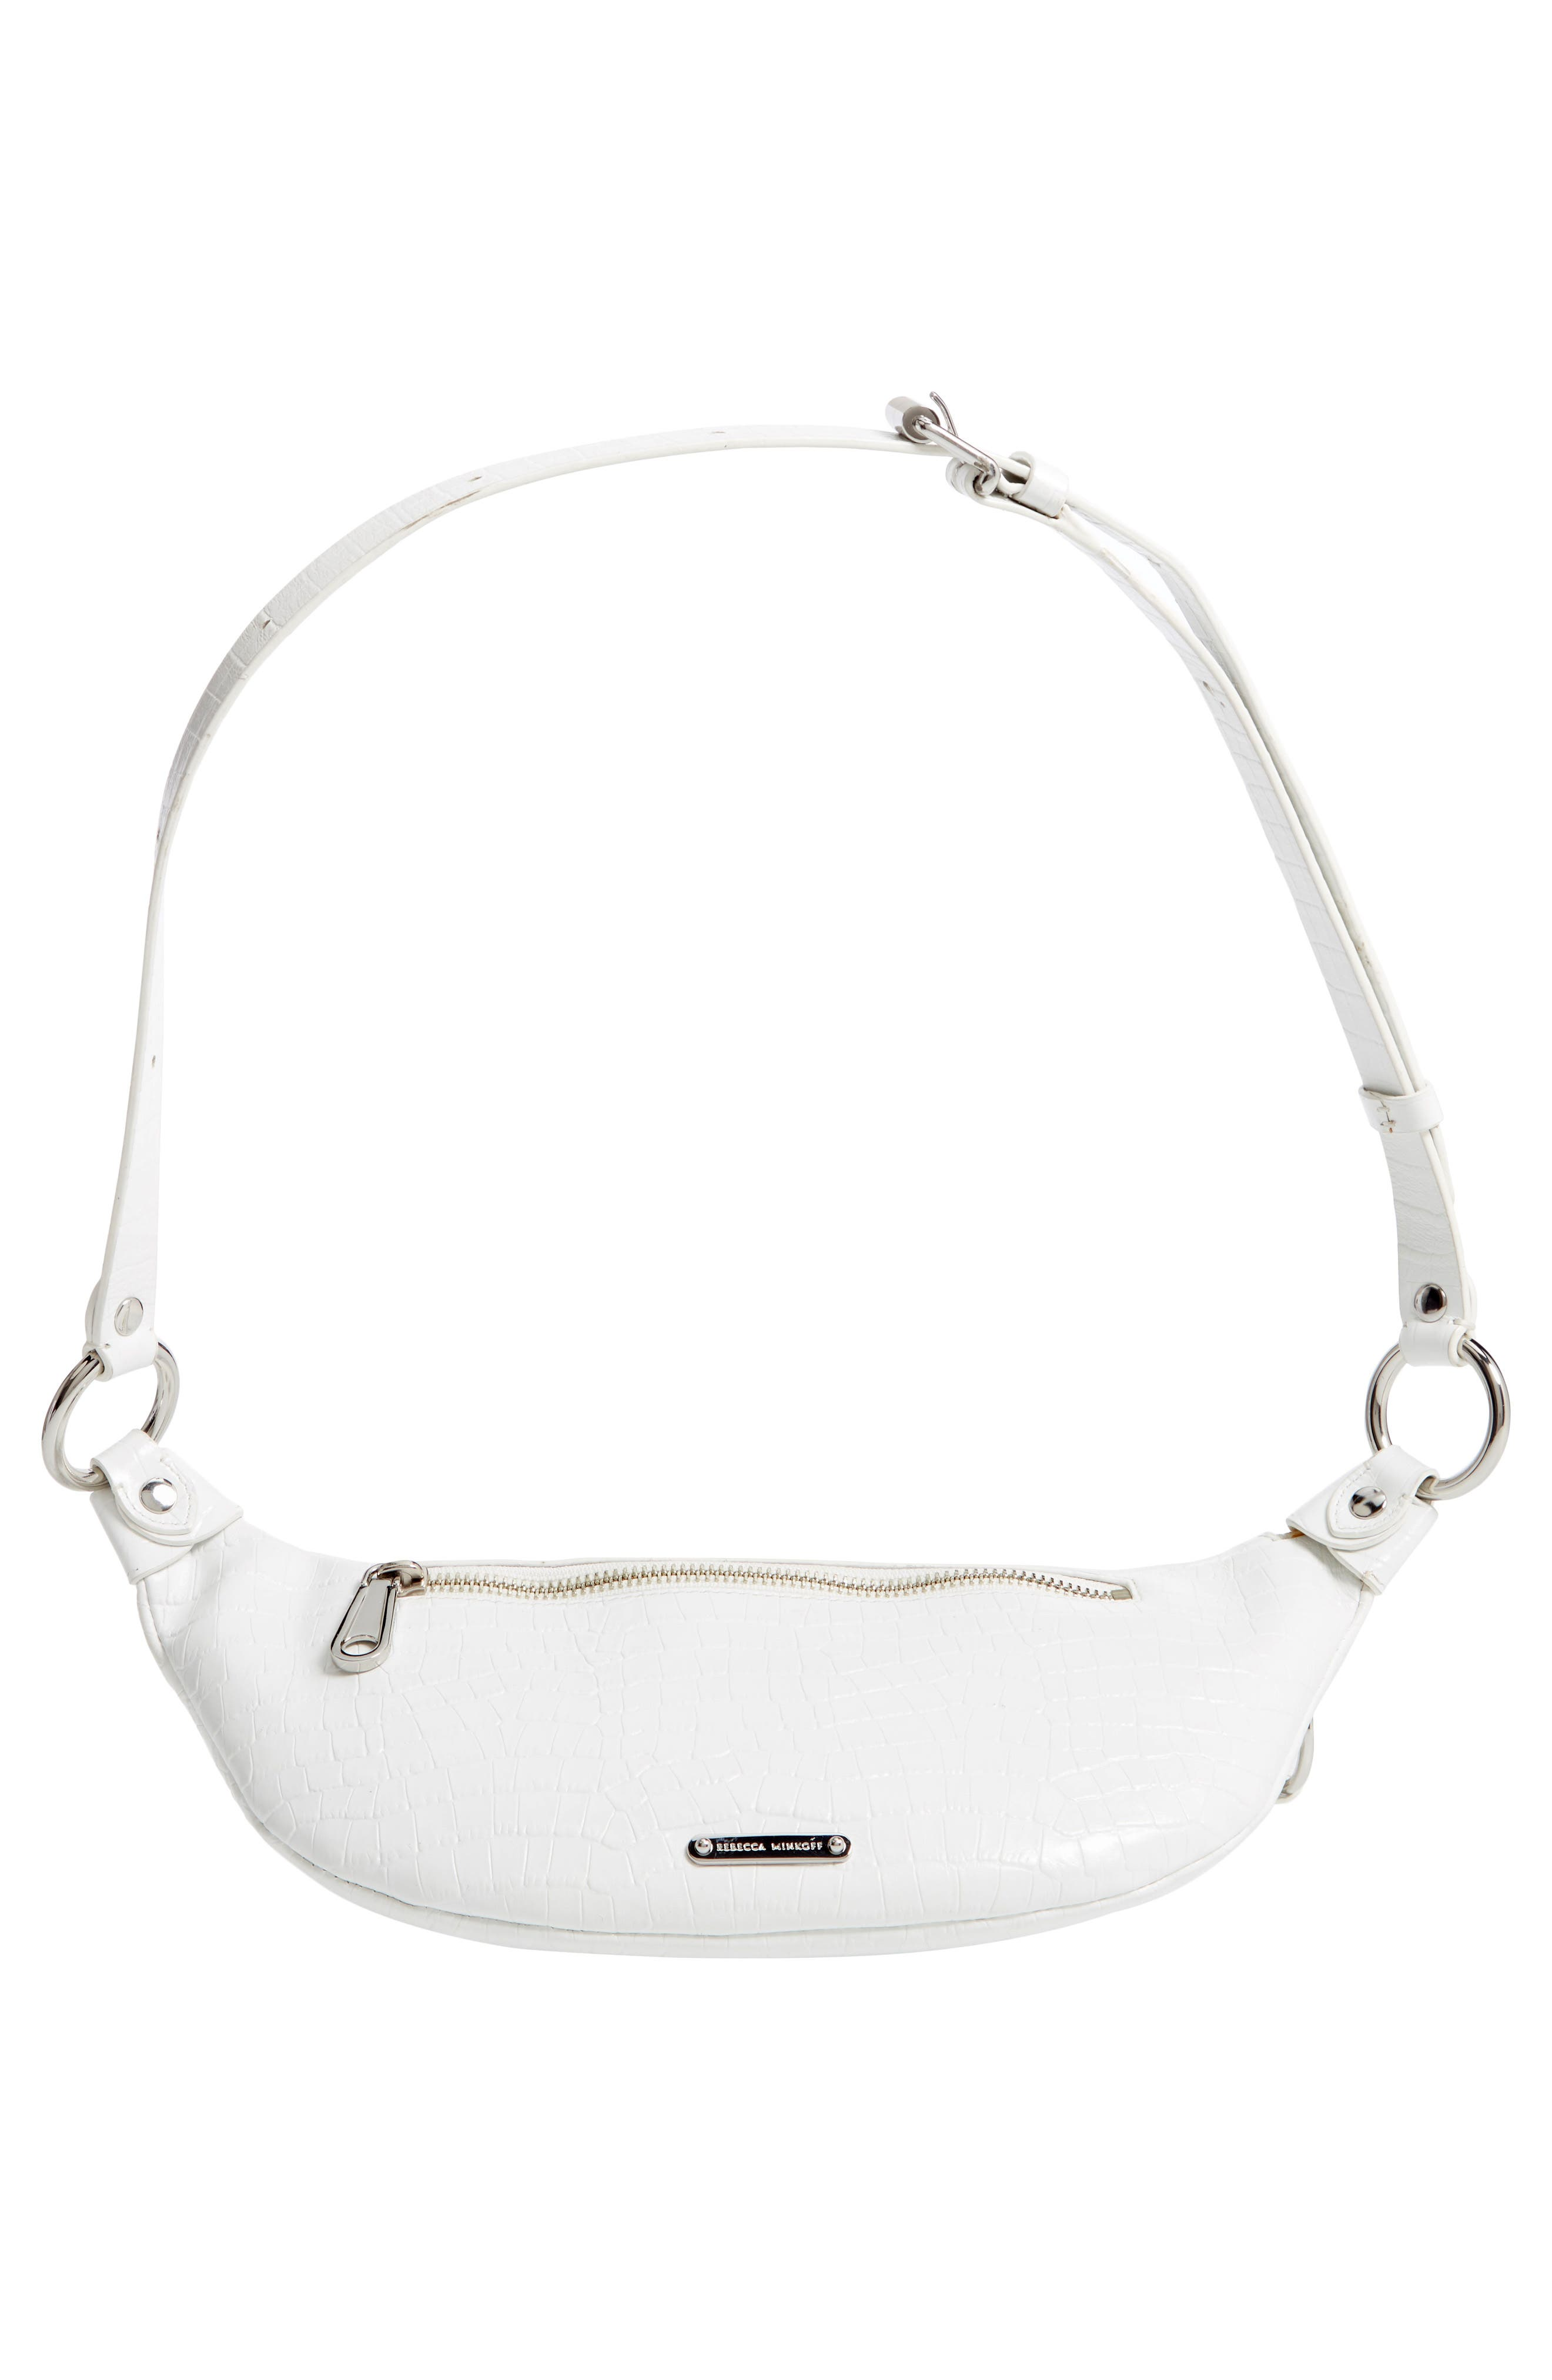 REBECCA MINKOFF, Bree Croc Embossed Leather Belt Bag, Alternate thumbnail 8, color, OPTIC WHITE